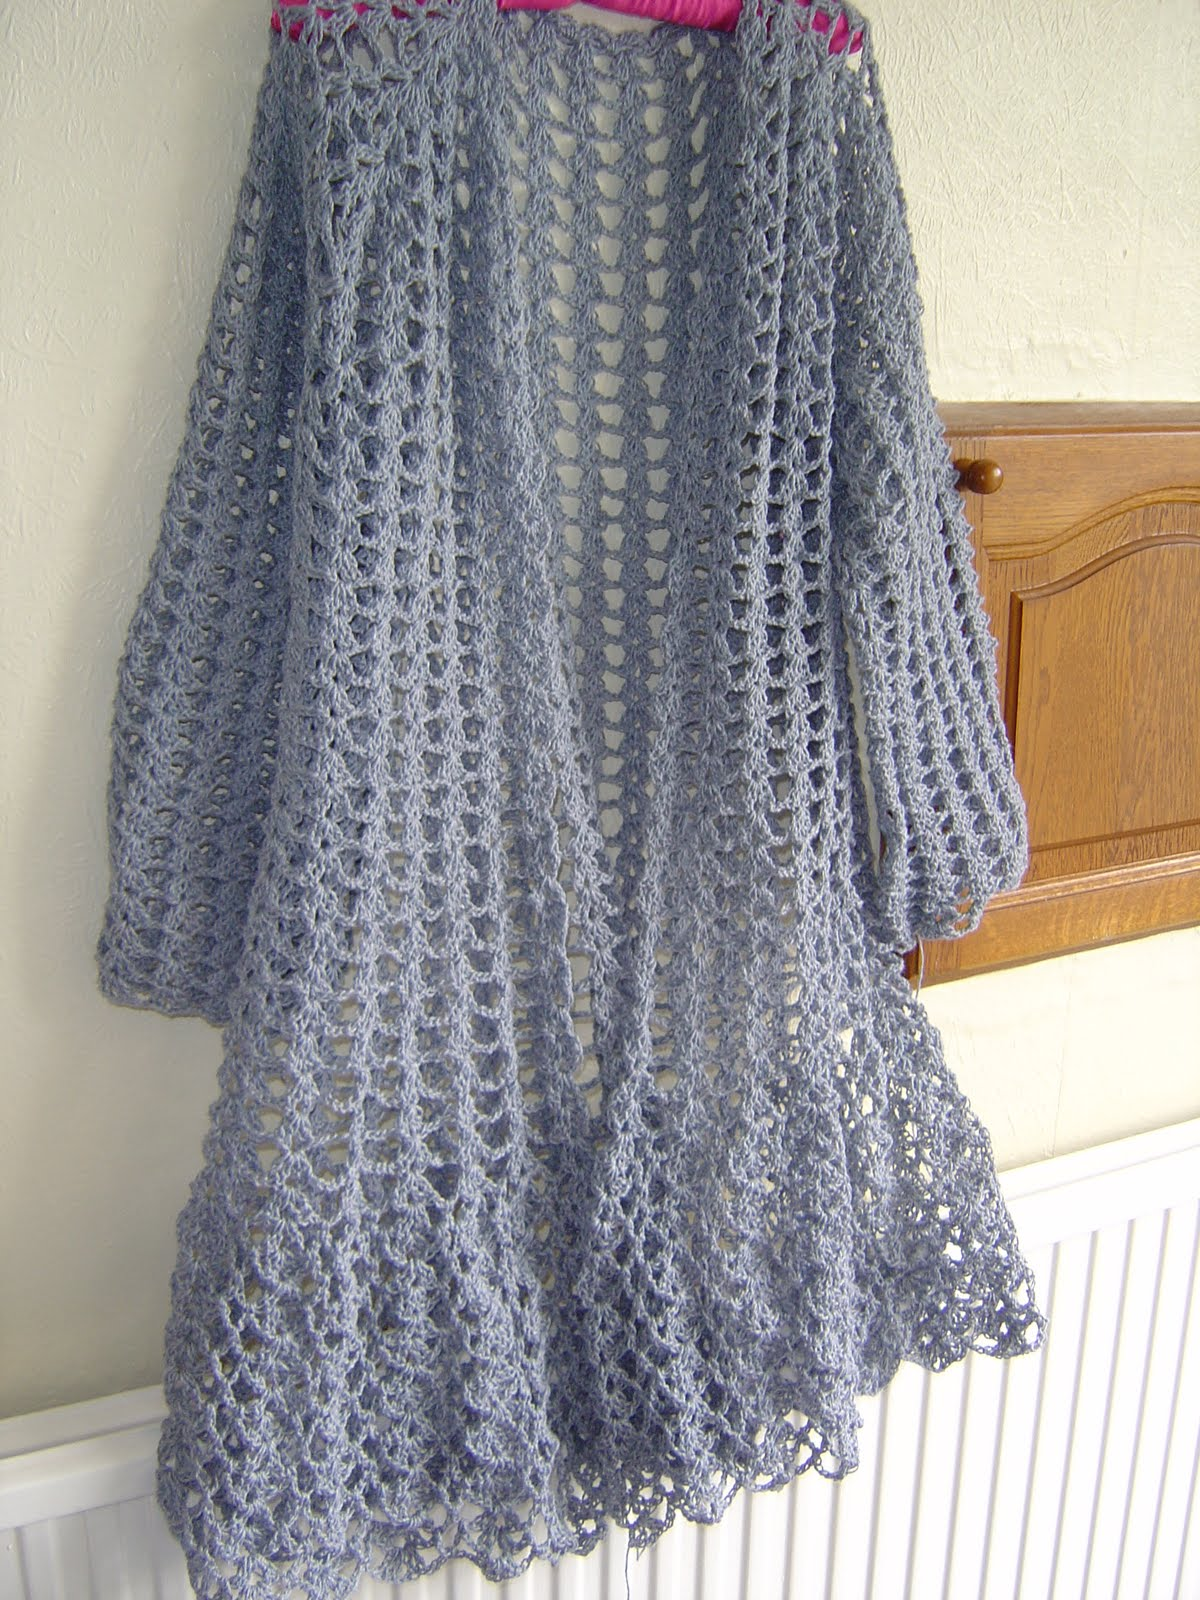 Duster Jacket Knitting Pattern : Enthusiastic crochetoholic: Progressing Slowly But Surely